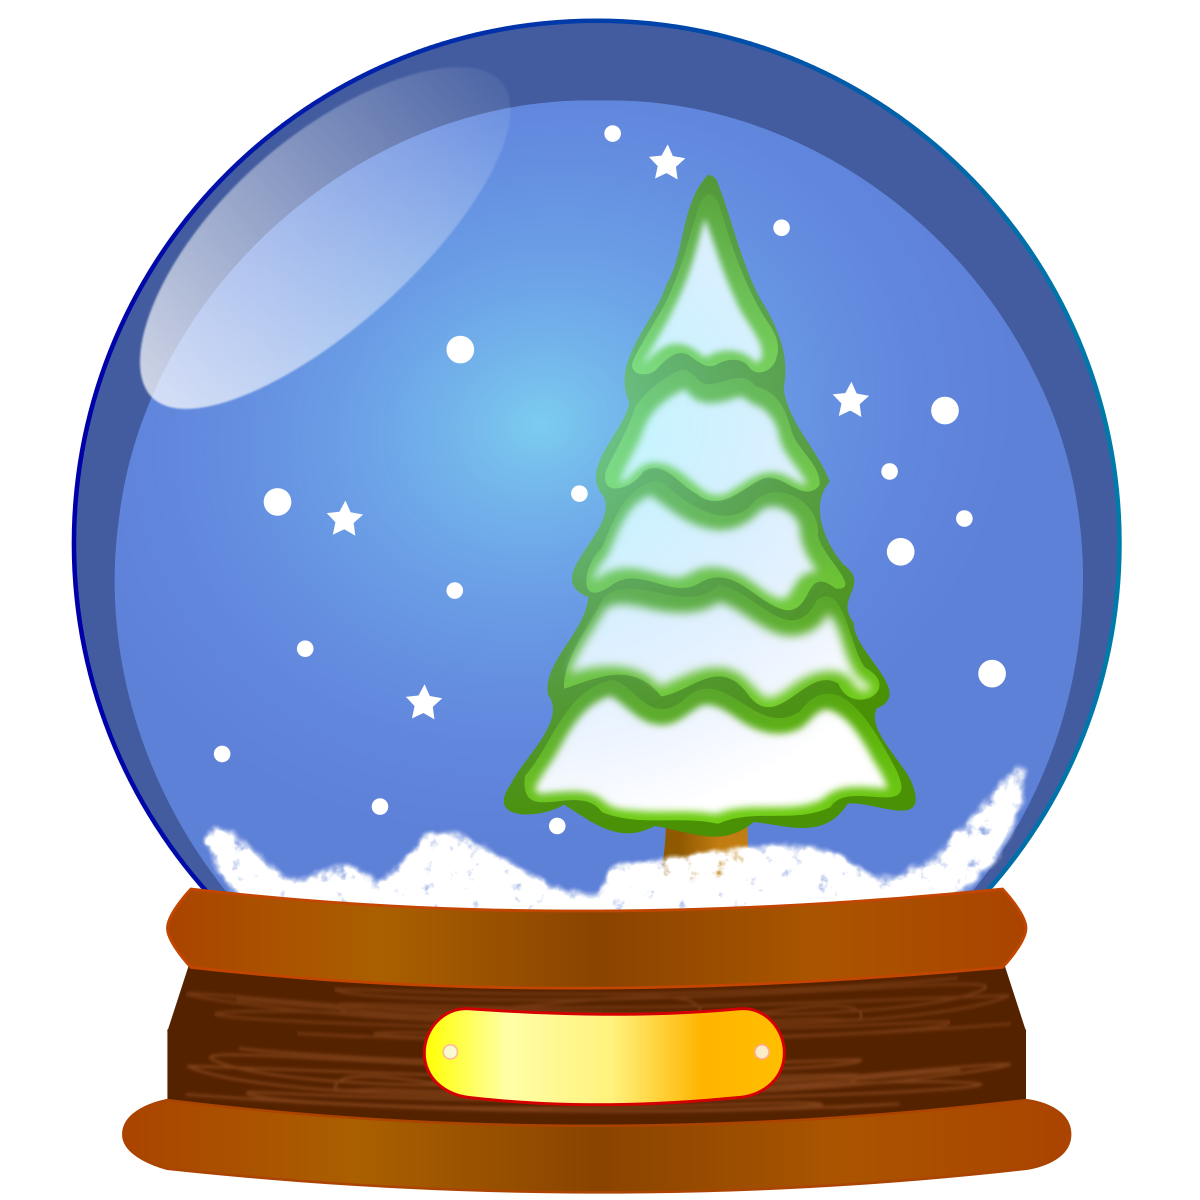 Snow globe wiktionary . Dictionary clipart reference